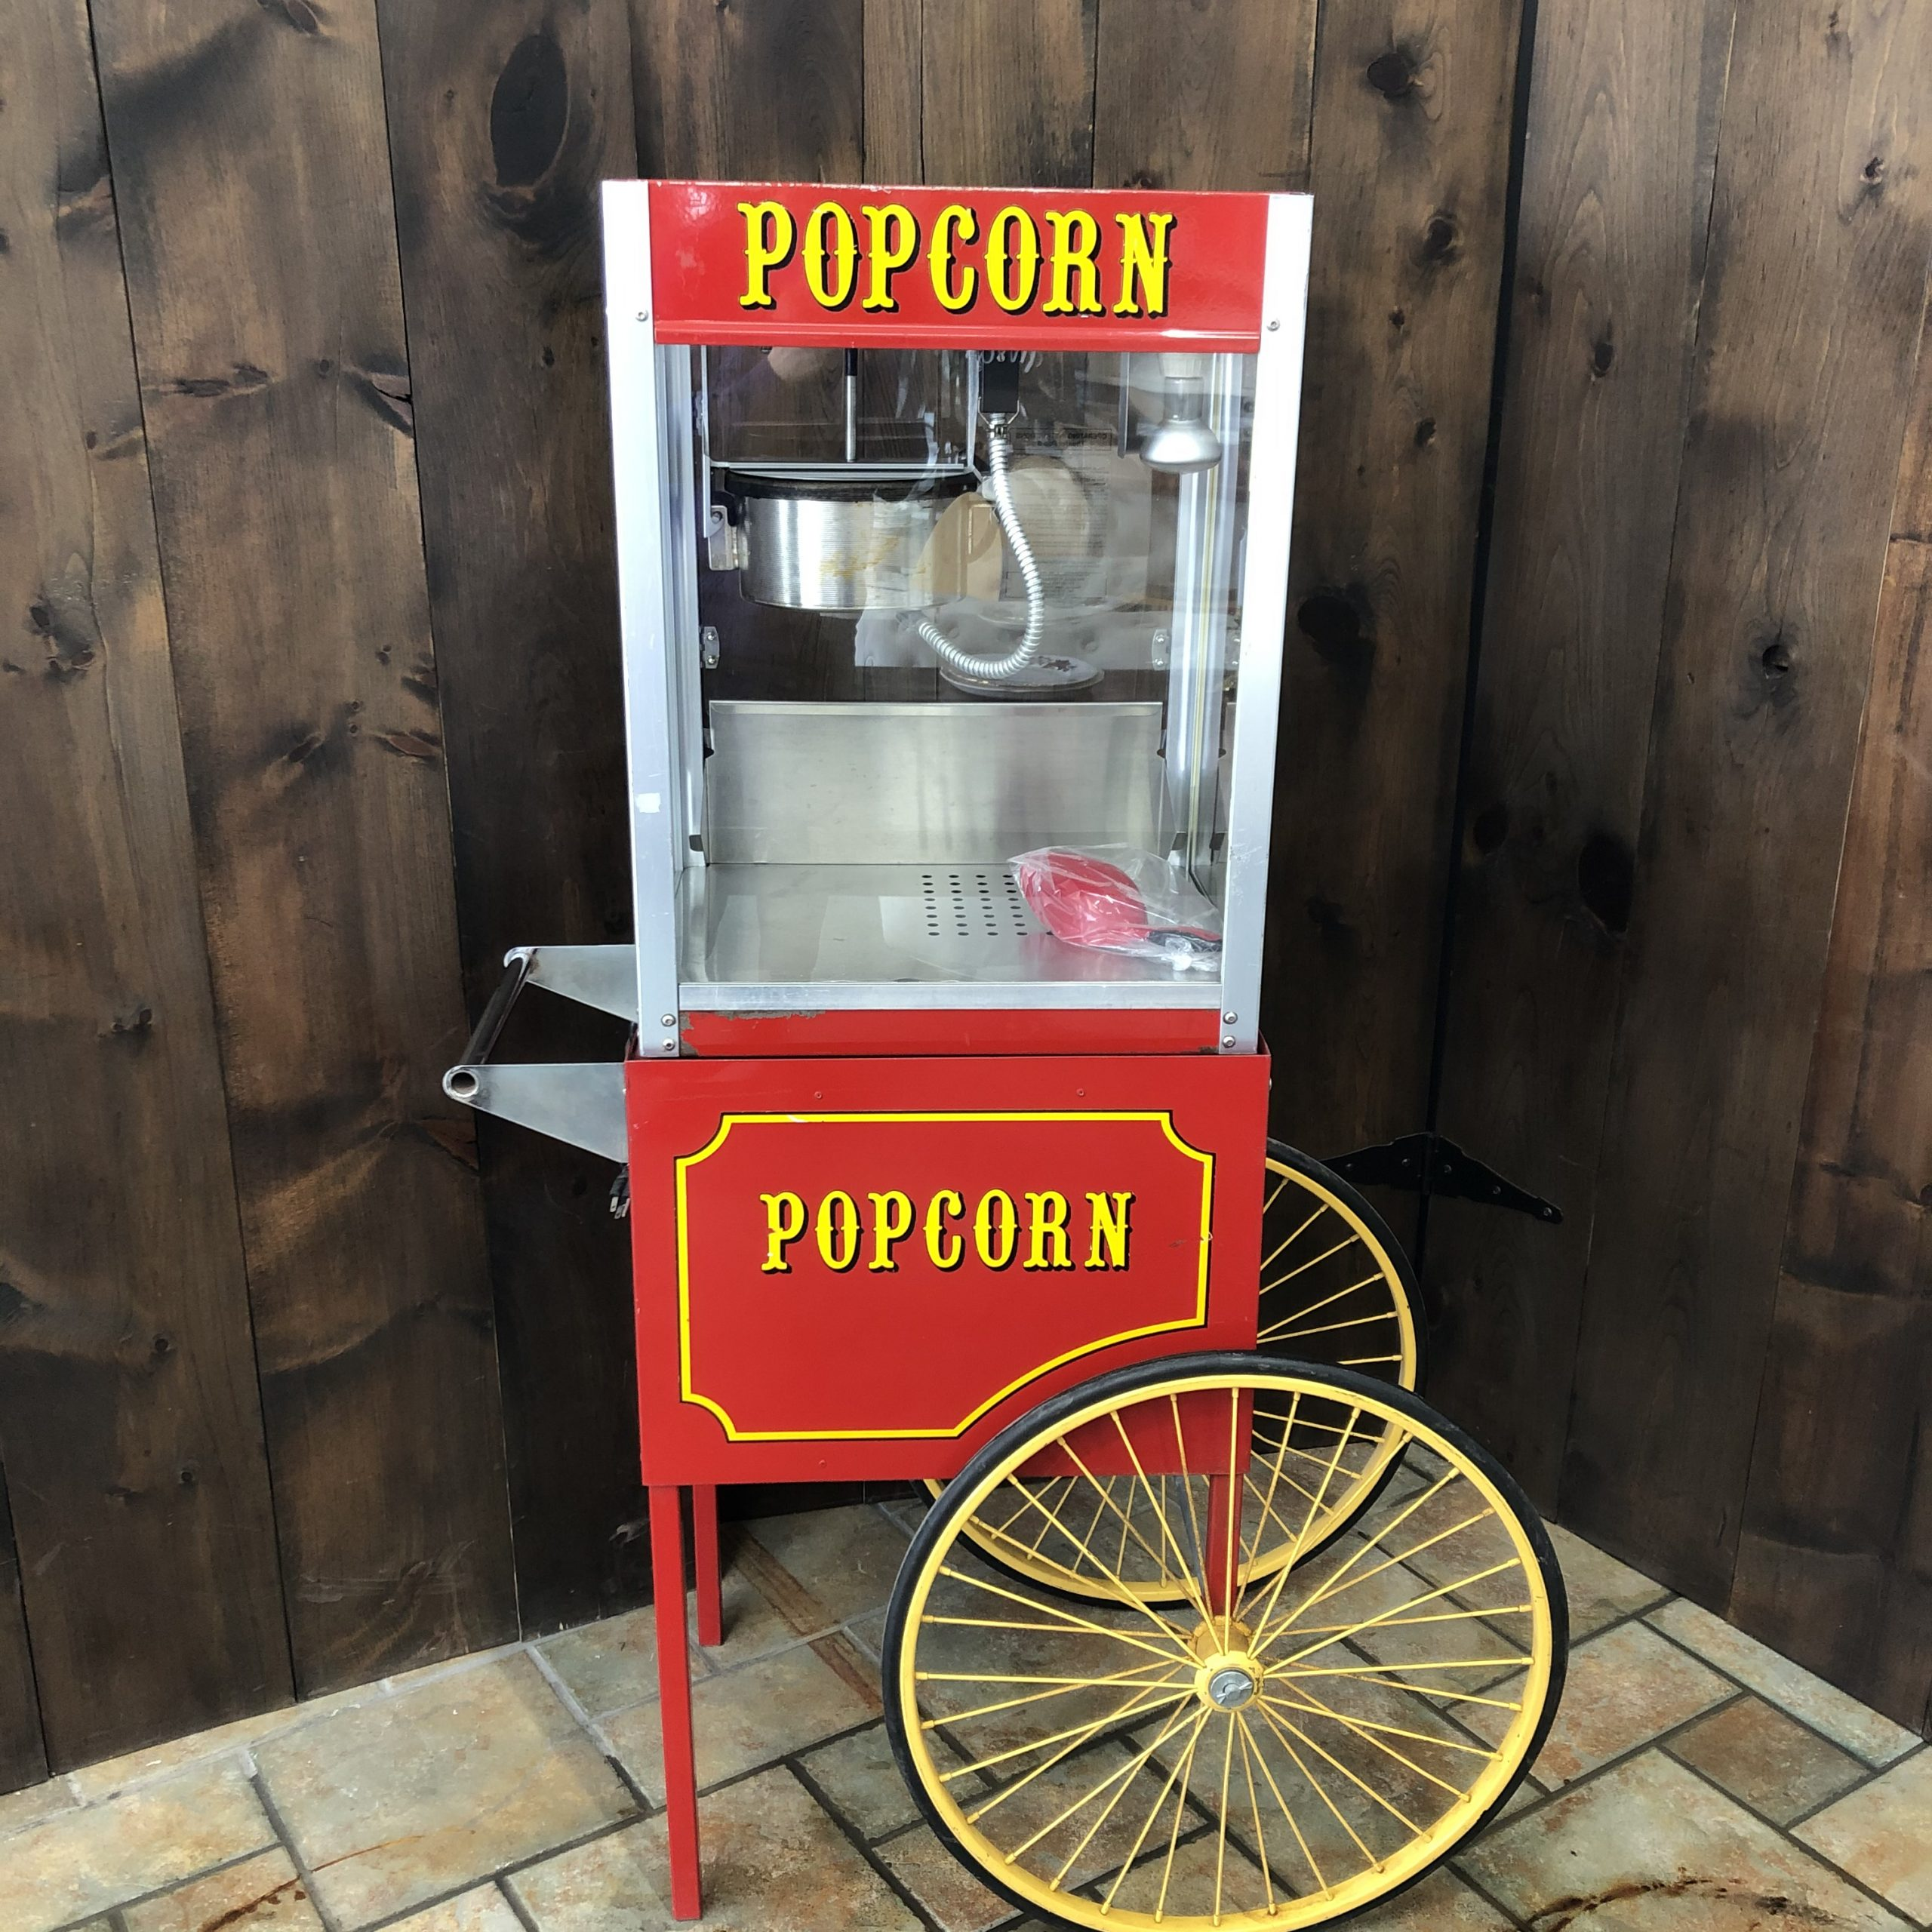 Popcorn Machine Image